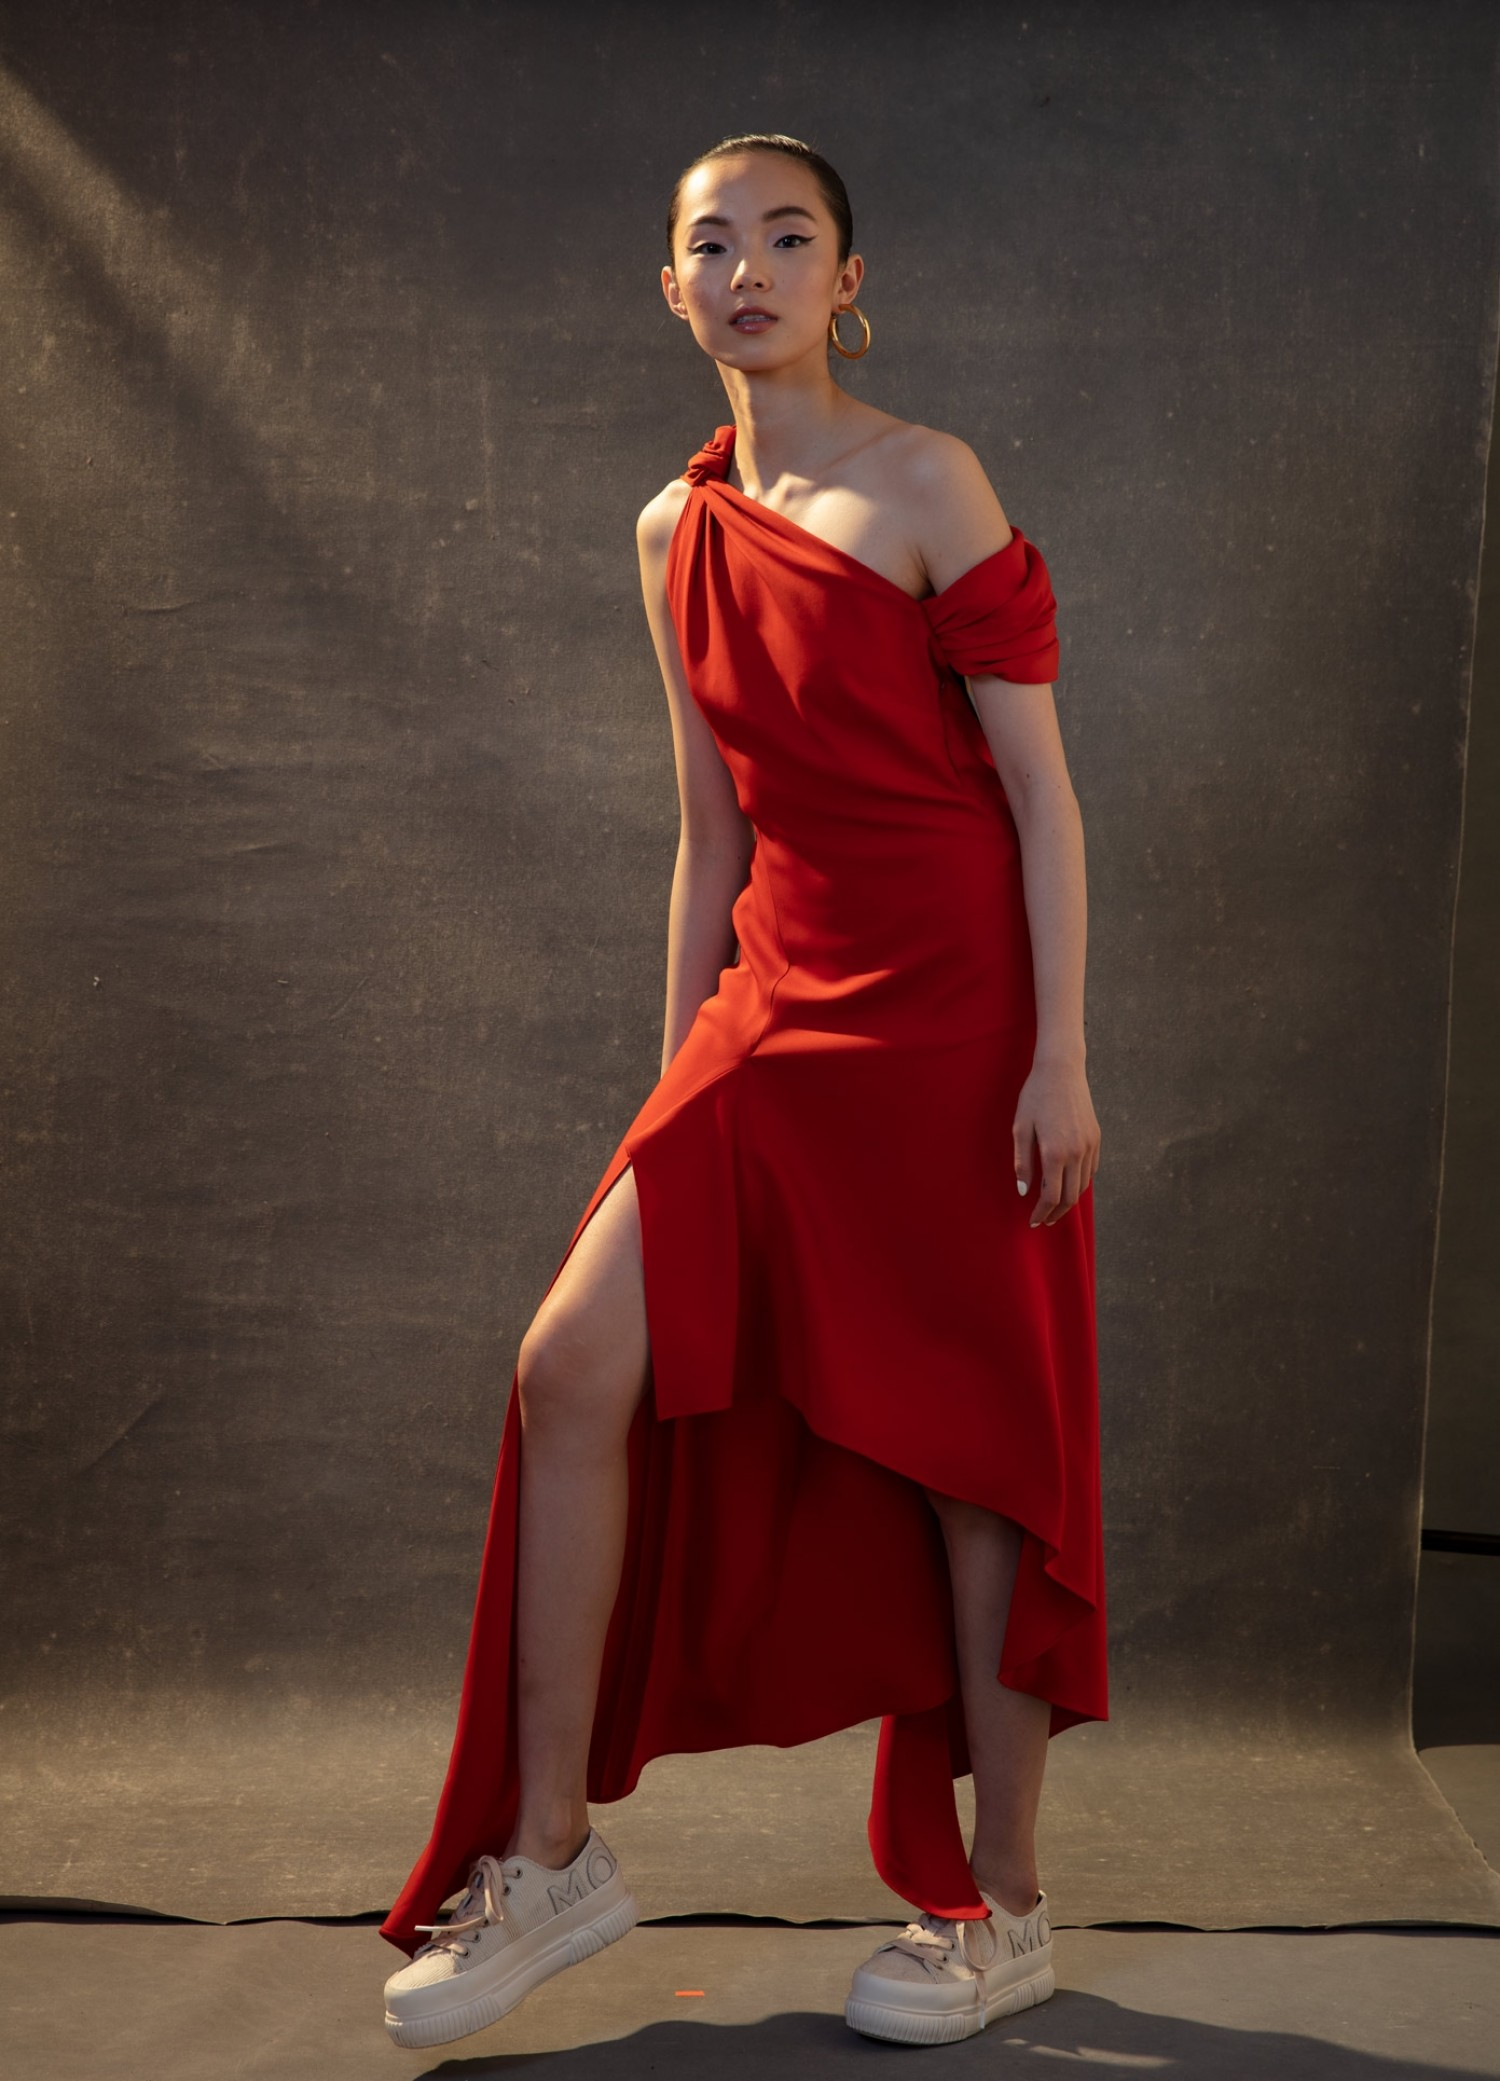 MONSE Knotted Shoulder Drape Dress in Sienna on Model Front View